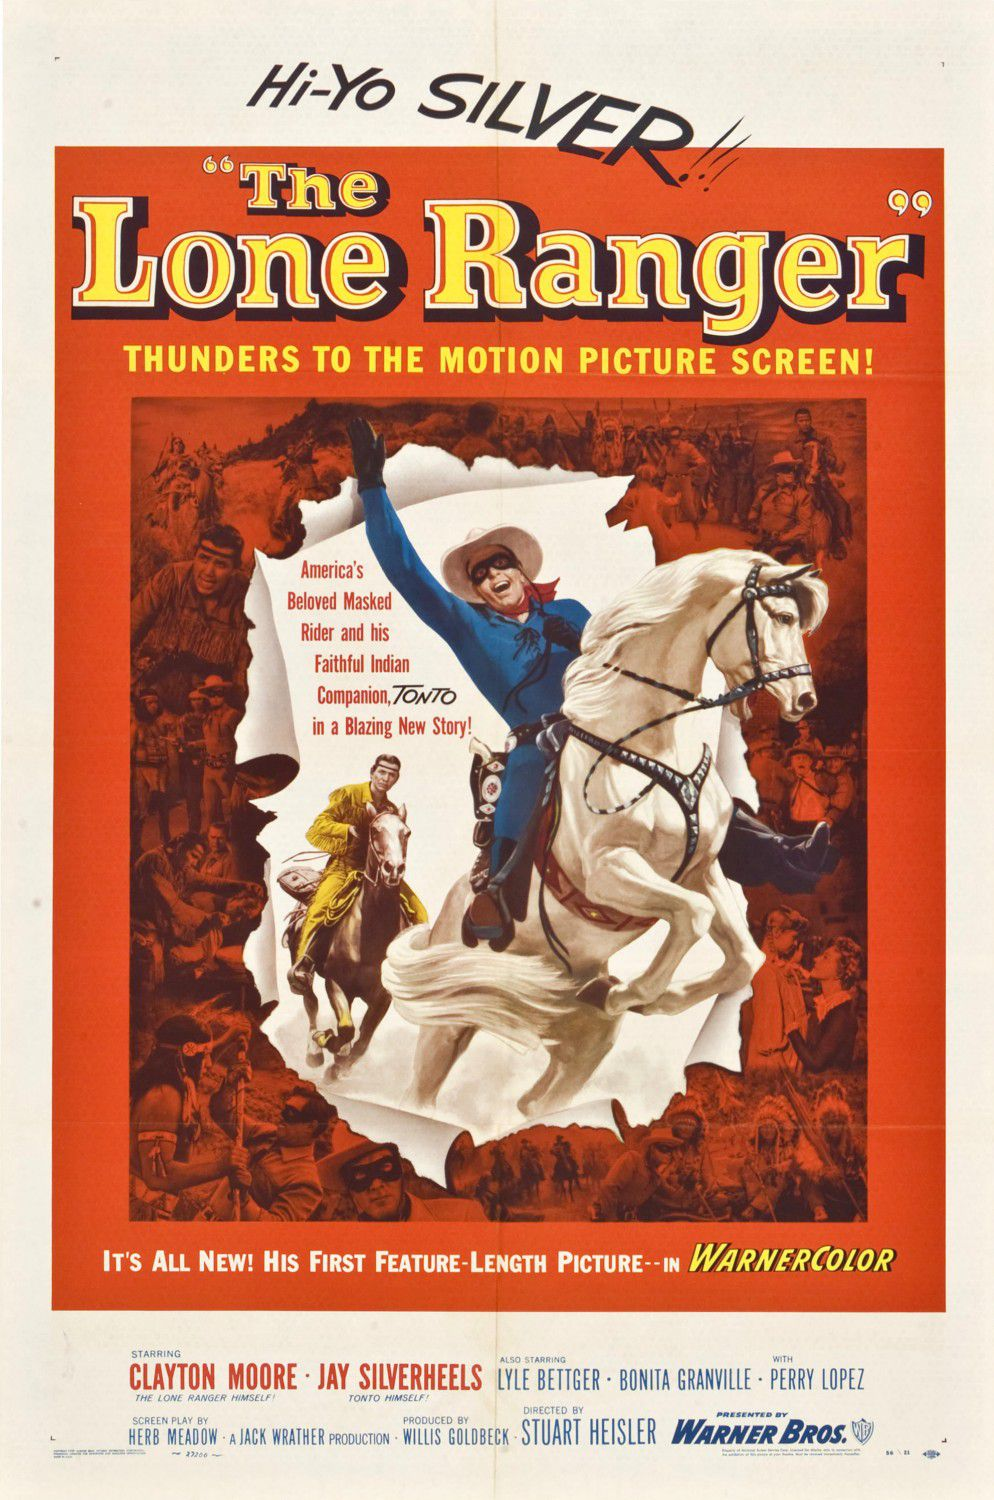 Lone Ranger (1956) - Cast: Clayton Moore, Jay Silverheels, Lyle Bettger, Bonita Granville, Perry Lopez - classic cult western poster